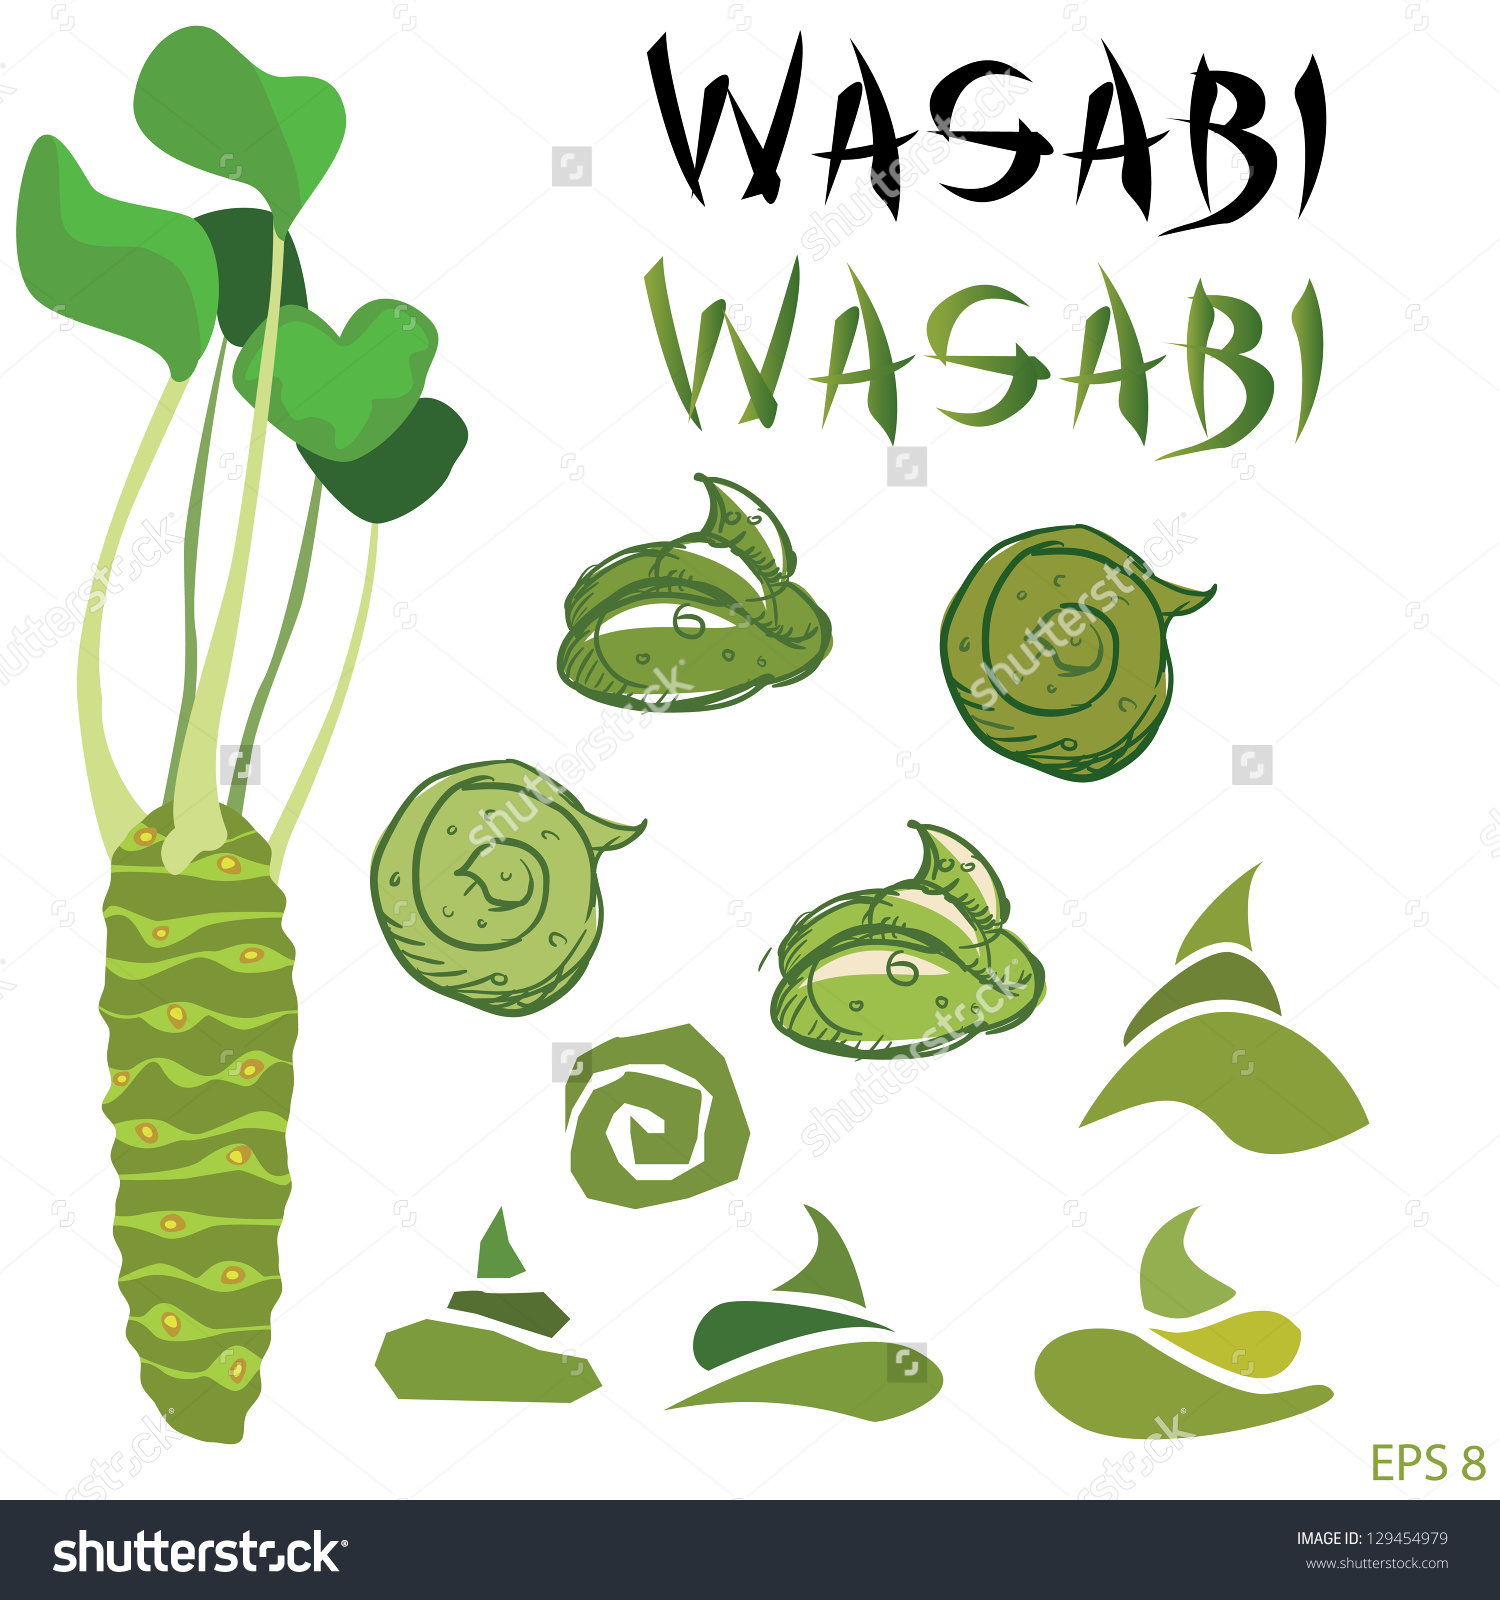 Wasabi Root Plant Set Vector Stock Vector 129454979.